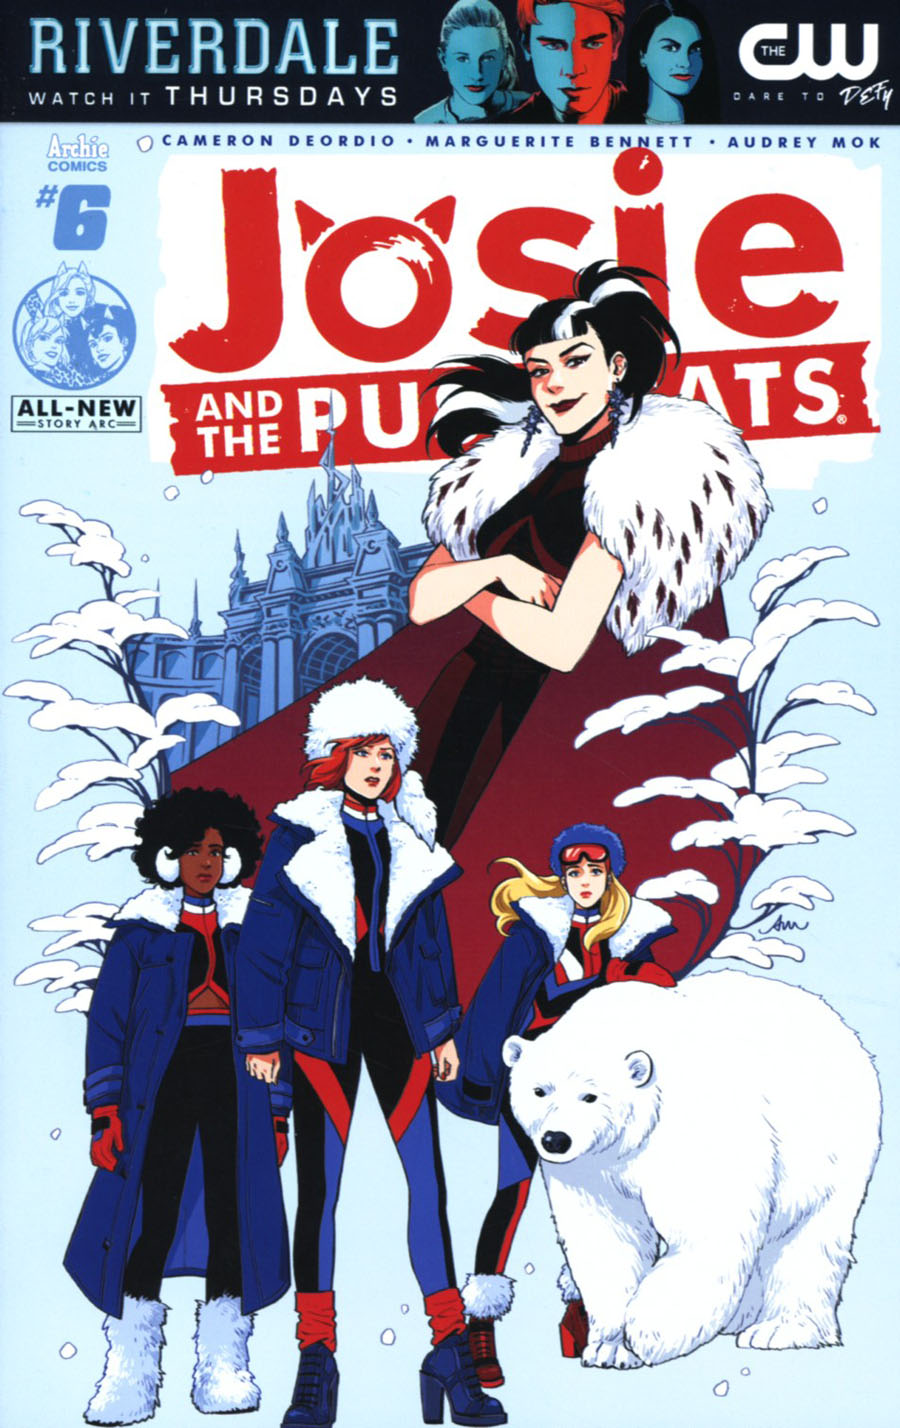 Josie And The Pussycats Vol 2 #6 Cover A Regular Audrey Mok Cover